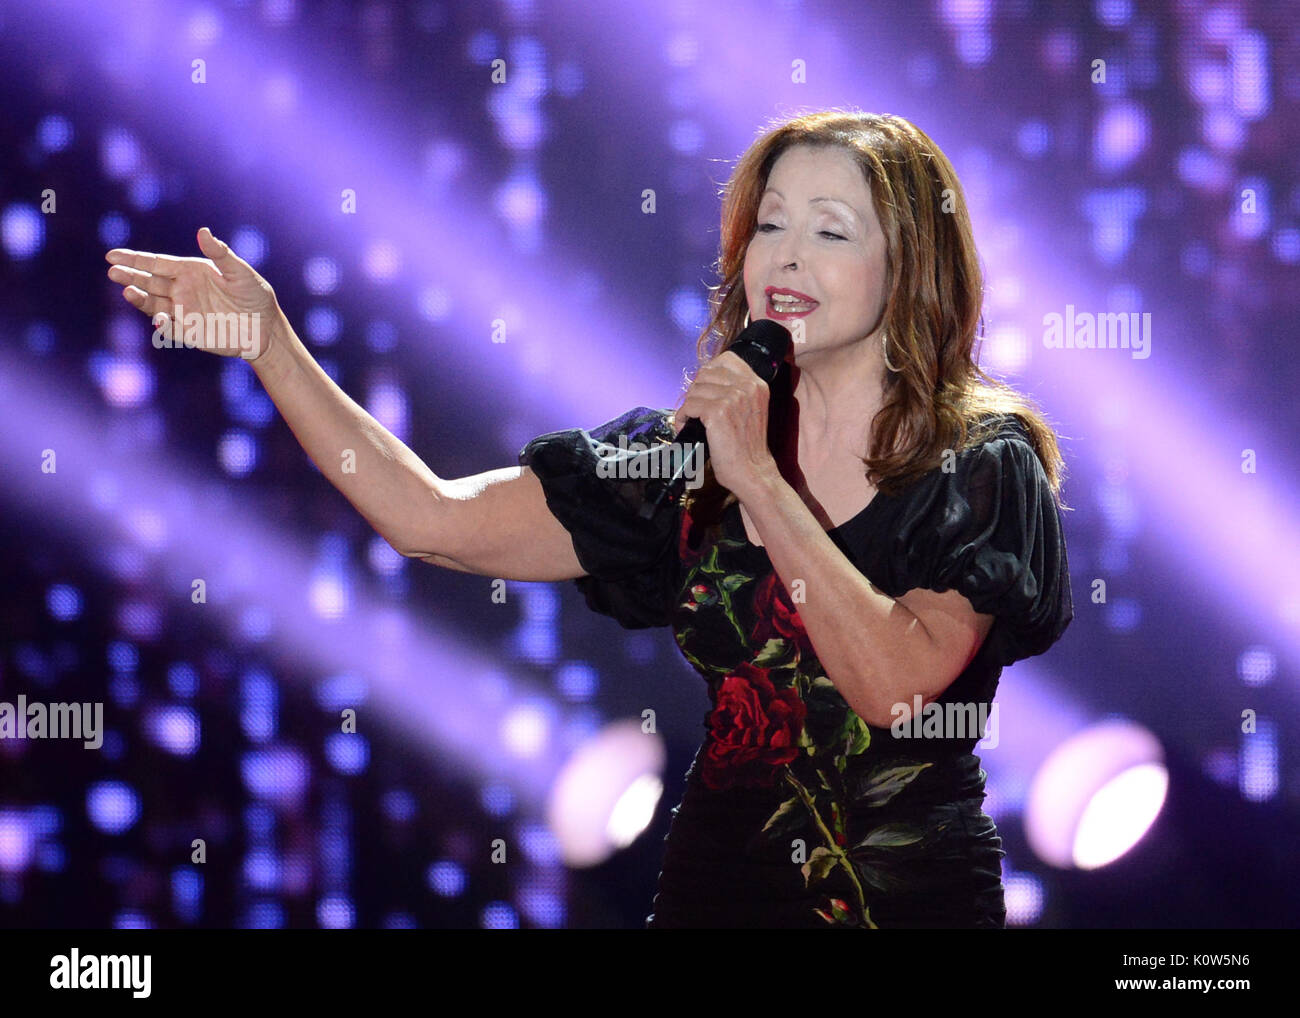 Singer Vicky Leandros performing onstage during the ZDF